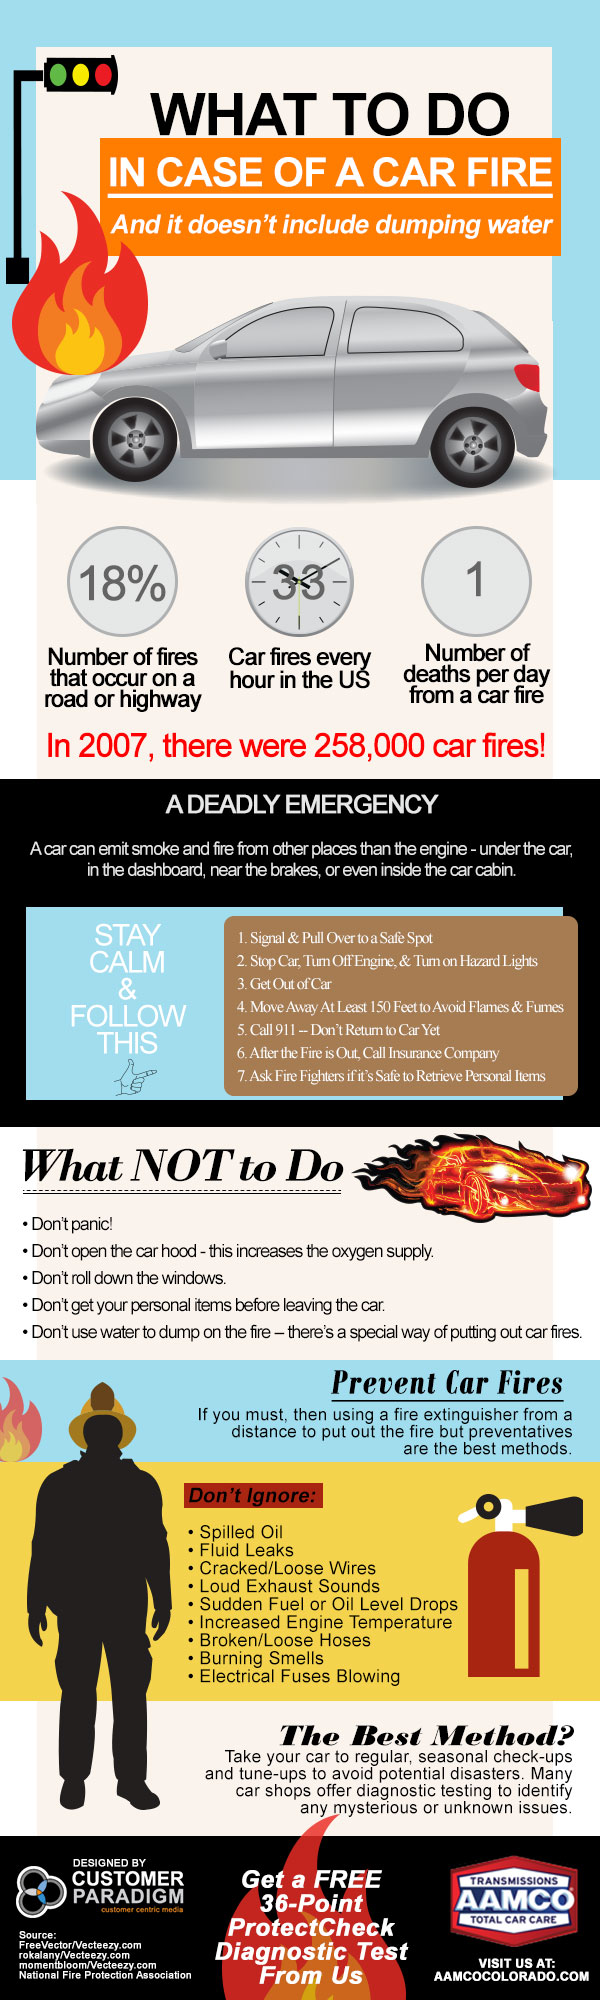 What to Do In Case of a Car Fire Infographic - Transmission Repair - AAMCO Colorado